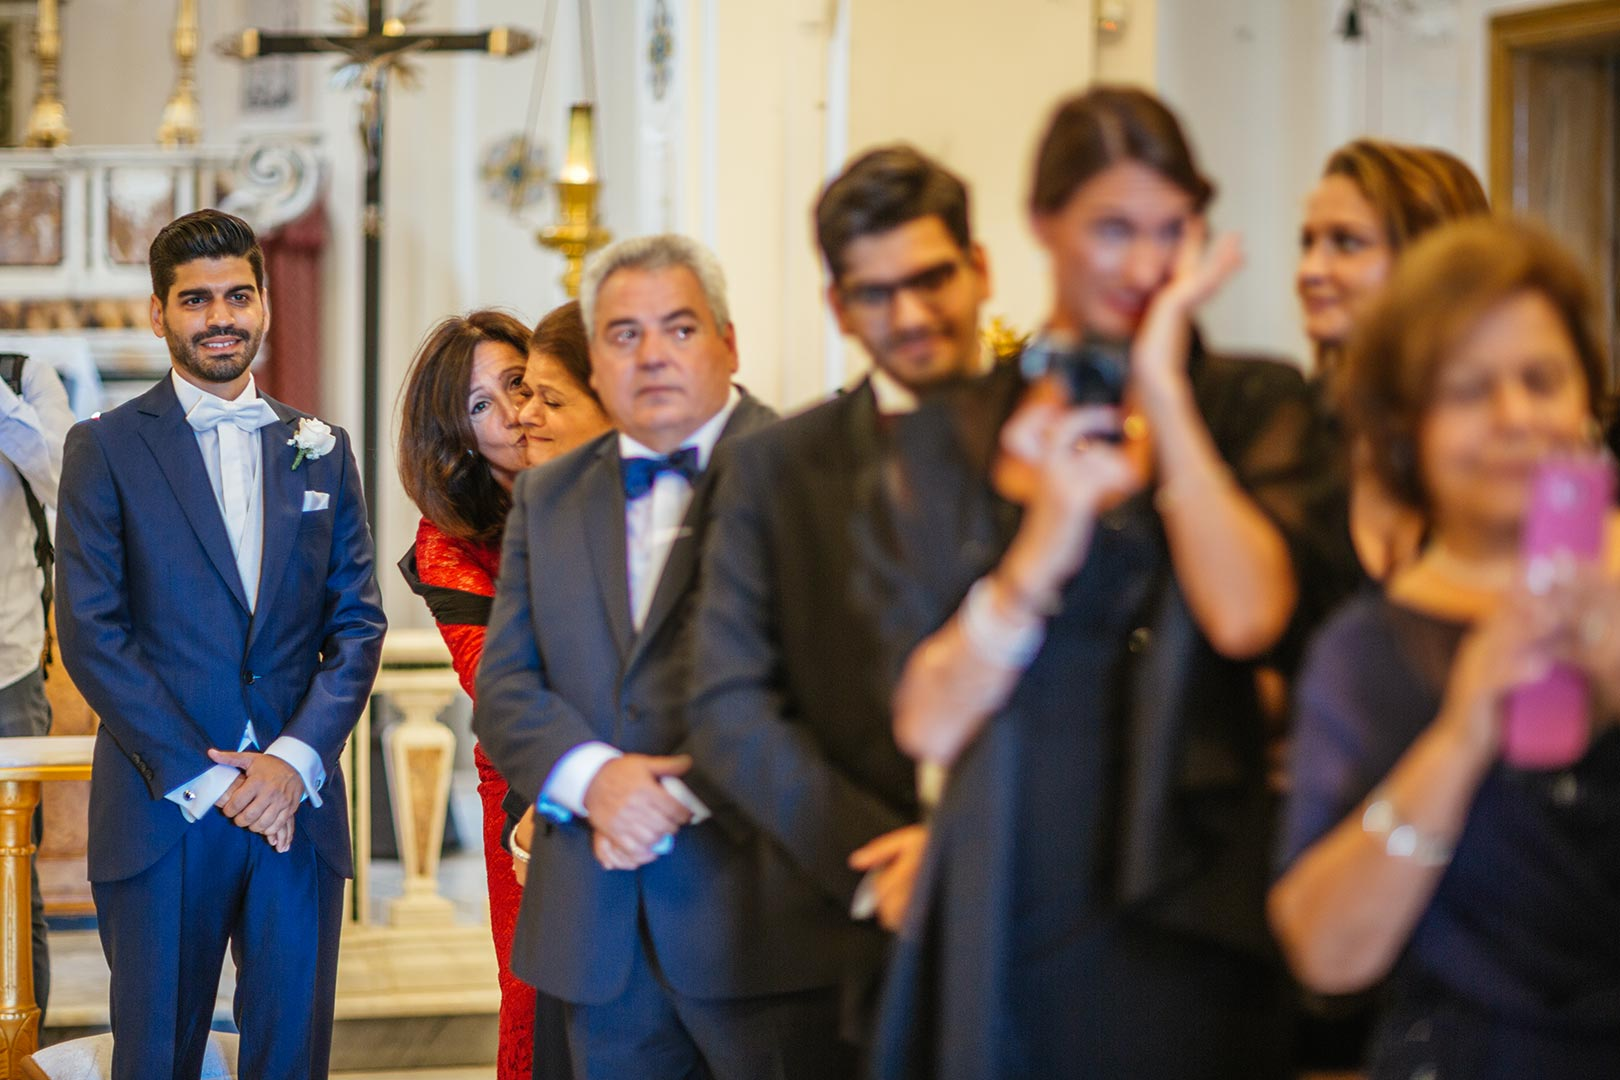 Wedding-at-Conca-dei-Marini_Angelo_Lena